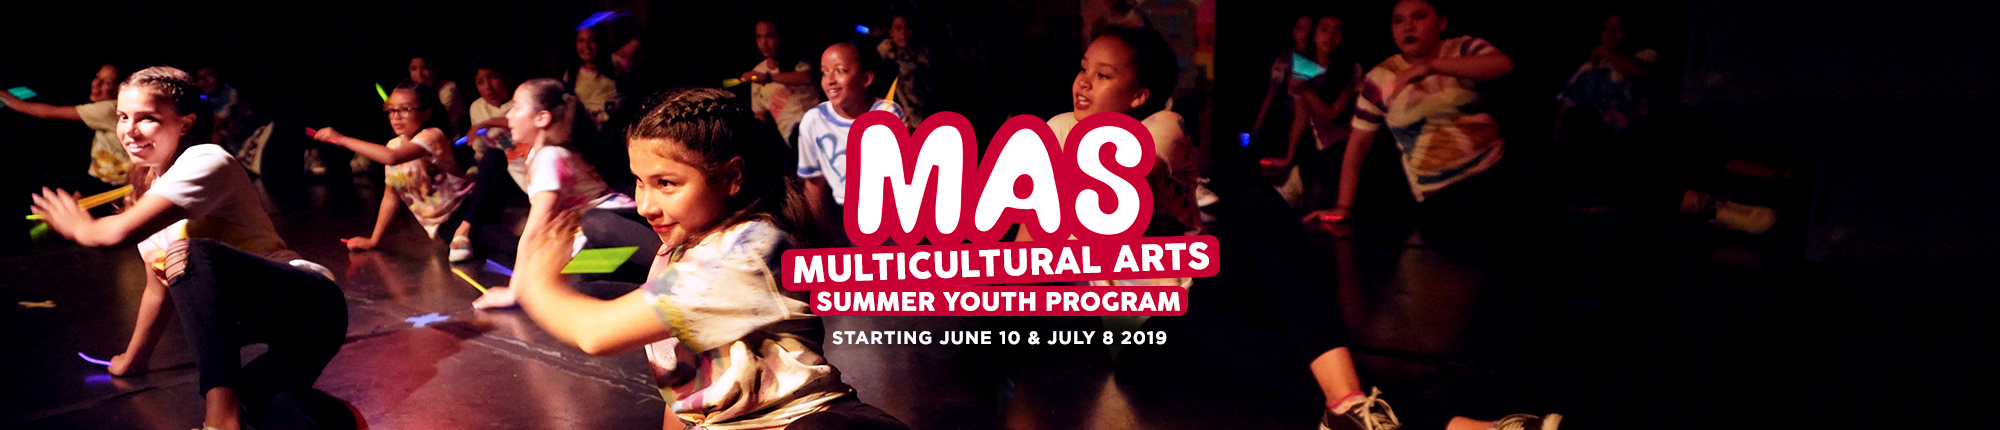 MAS: Multicultural Arts Summer Youth Program, Starting June 10 and July 8 2019